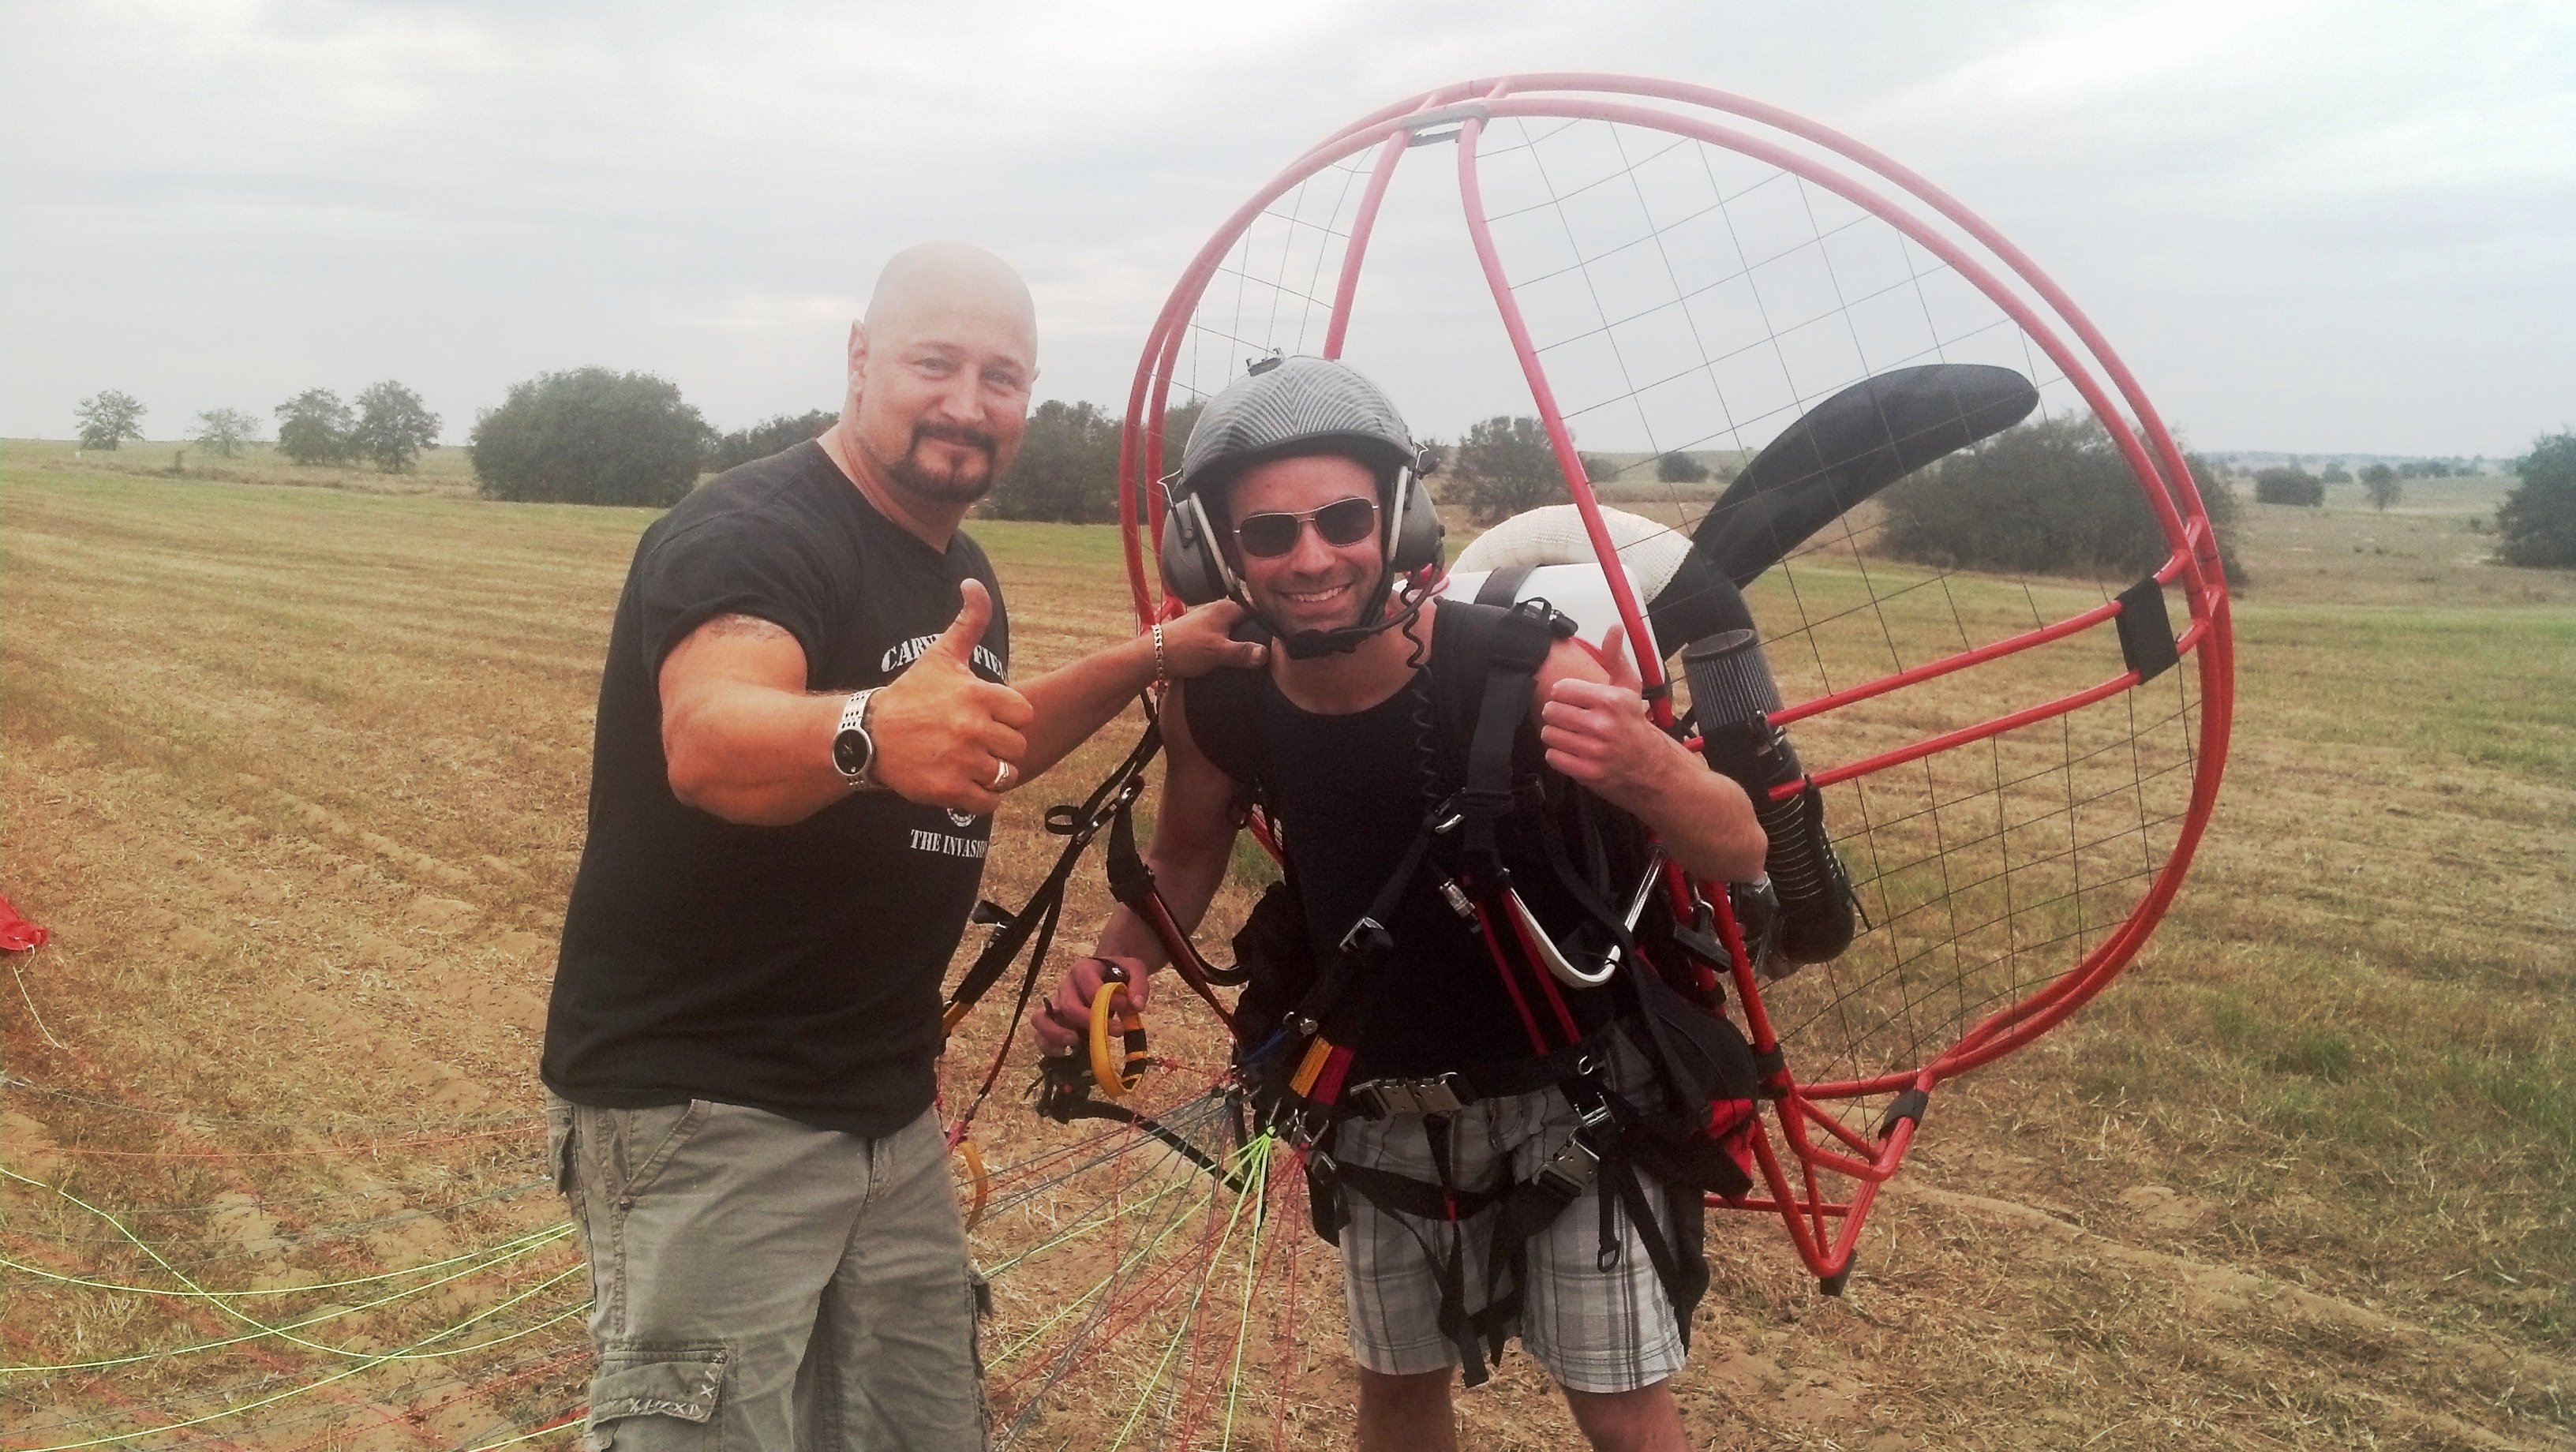 Pictures Of Students Flight Junkies Powered Paragliding